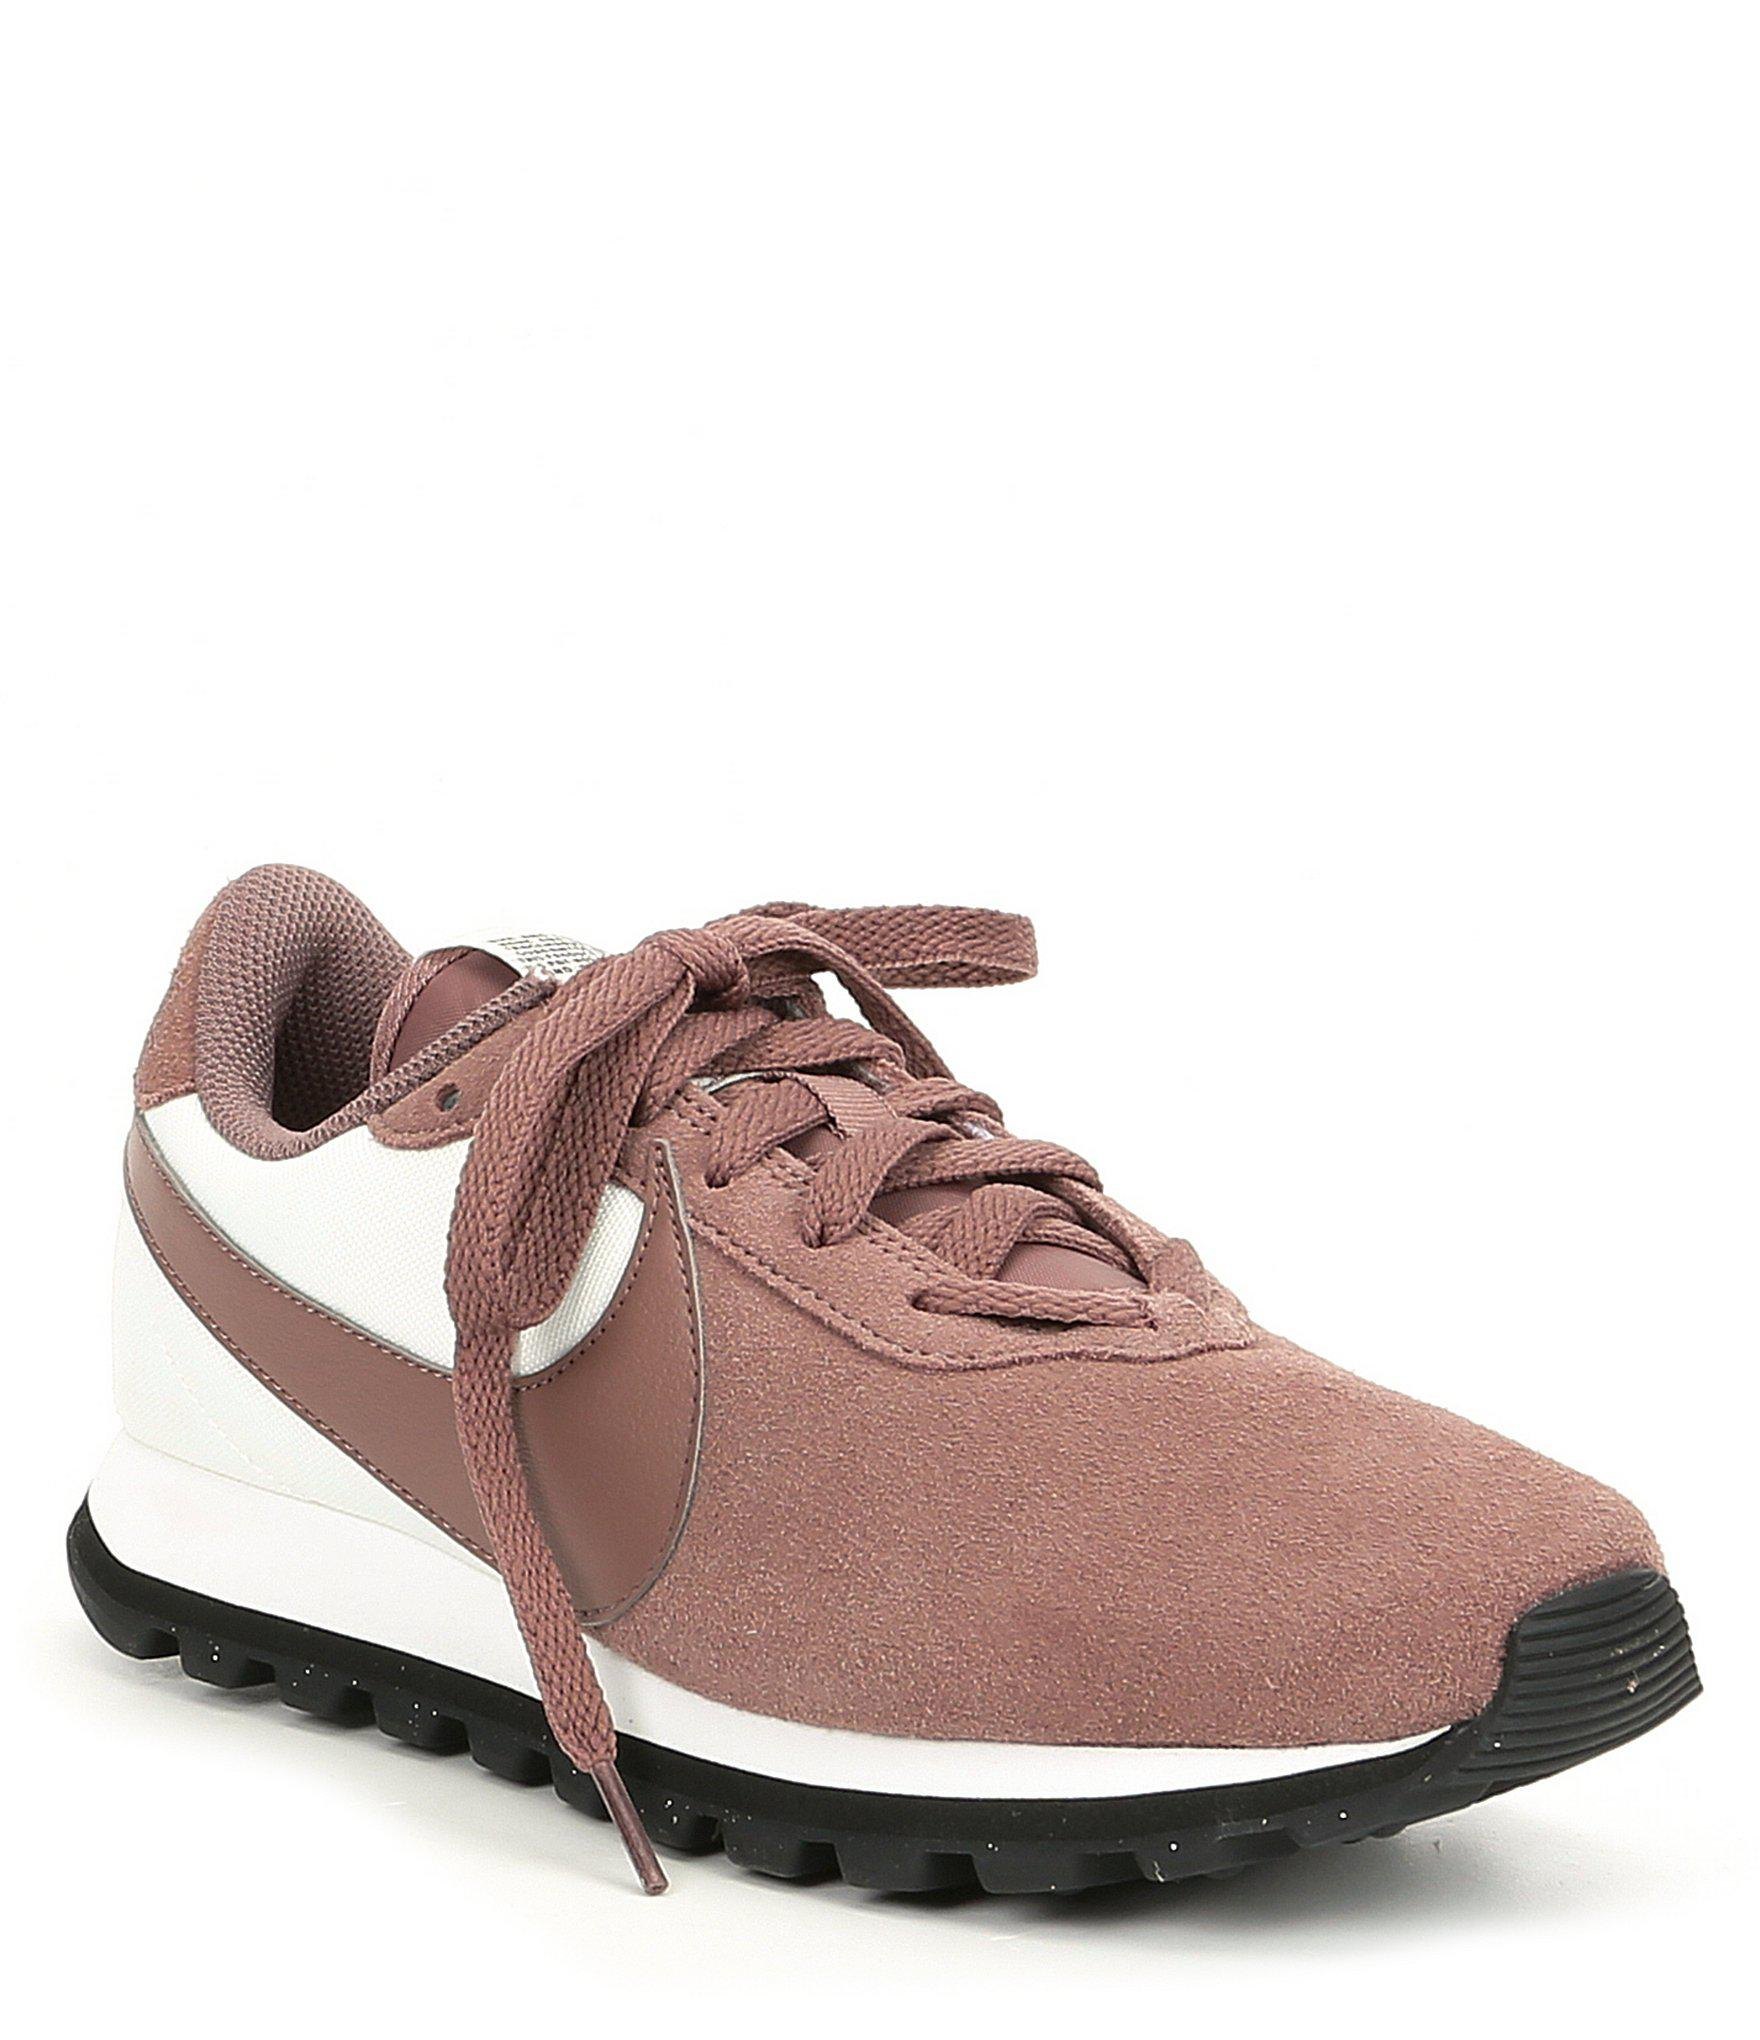 c871fa45733d Lyst - Nike Women s Pre-love O.x. Suede Lifestyle Shoe in Pink